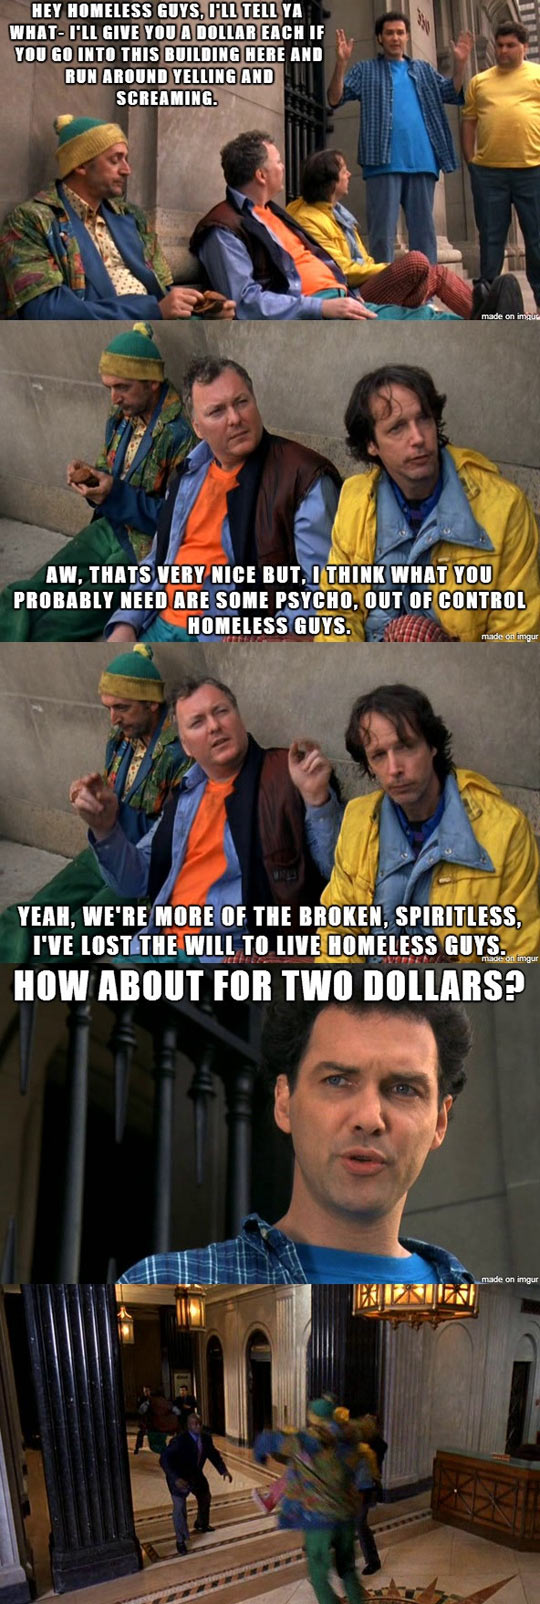 funny-homeless-guys-different-kind